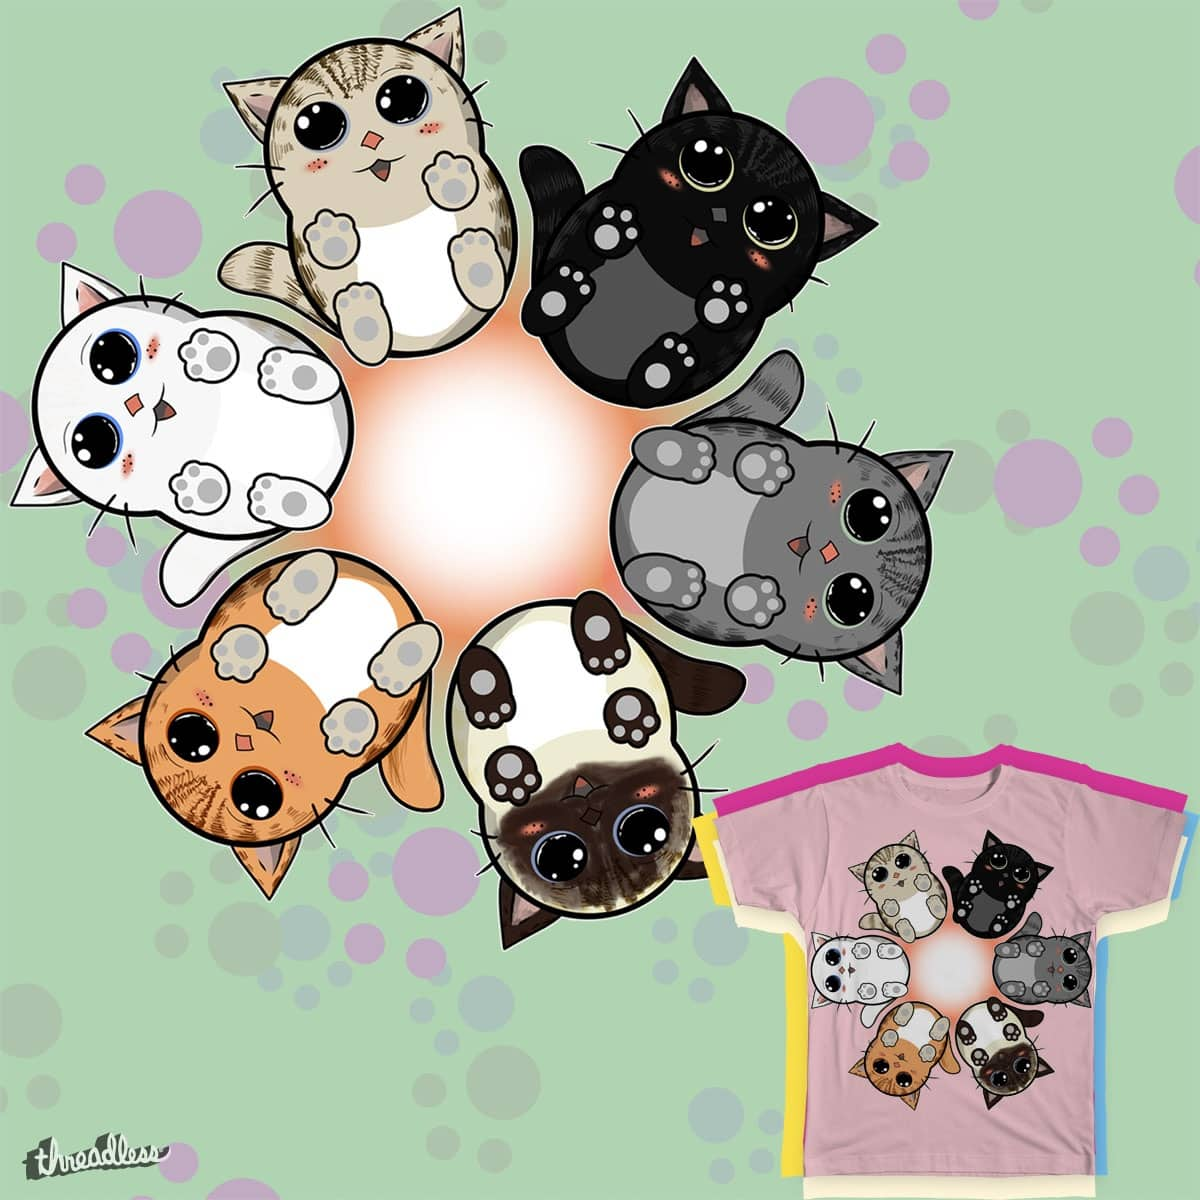 Kitty circle by OliverDemers on Threadless